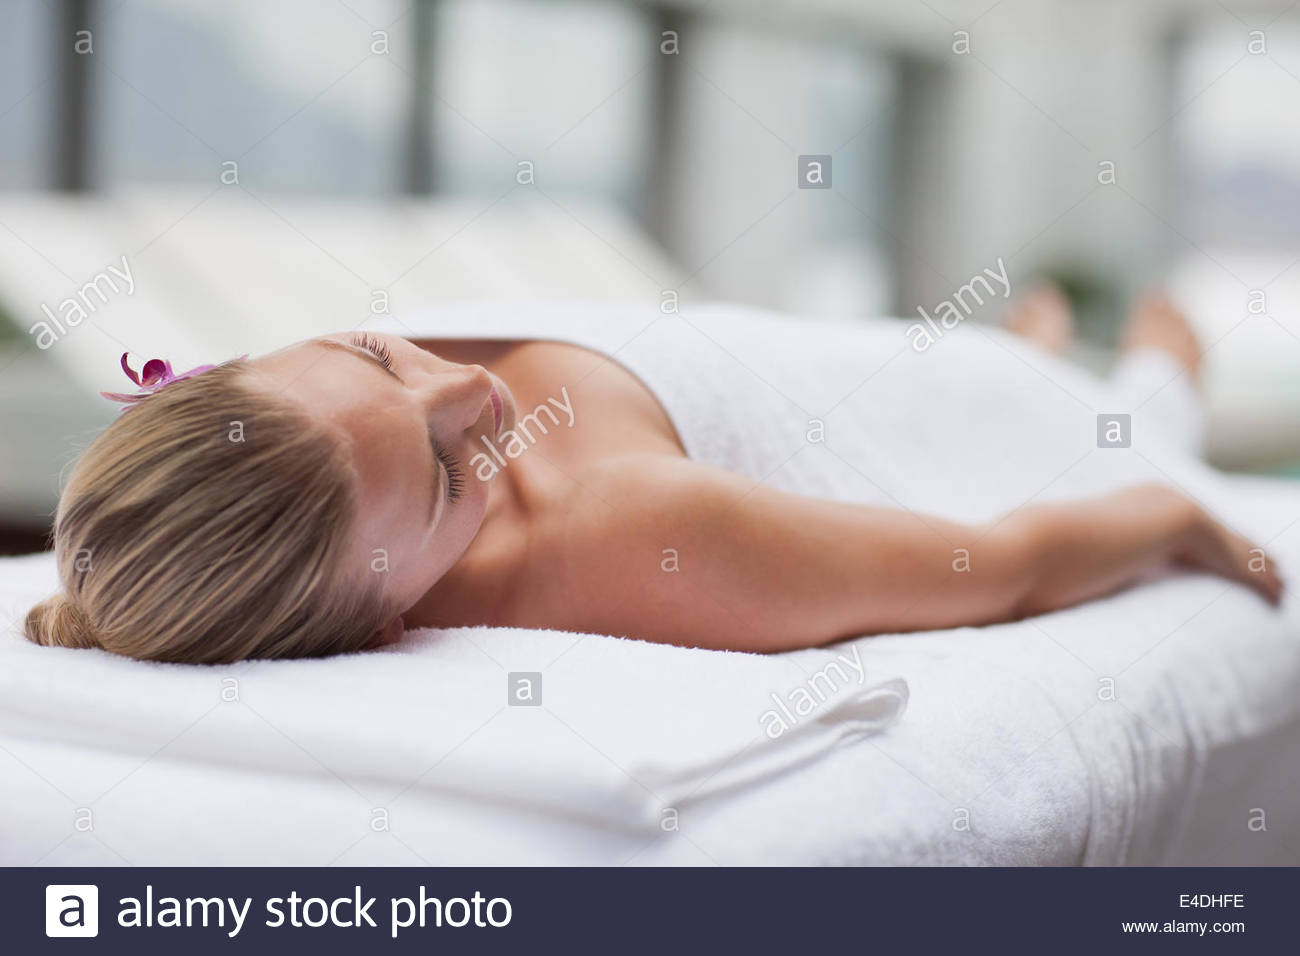 Woman laying on massage table at poolside - Stock Image